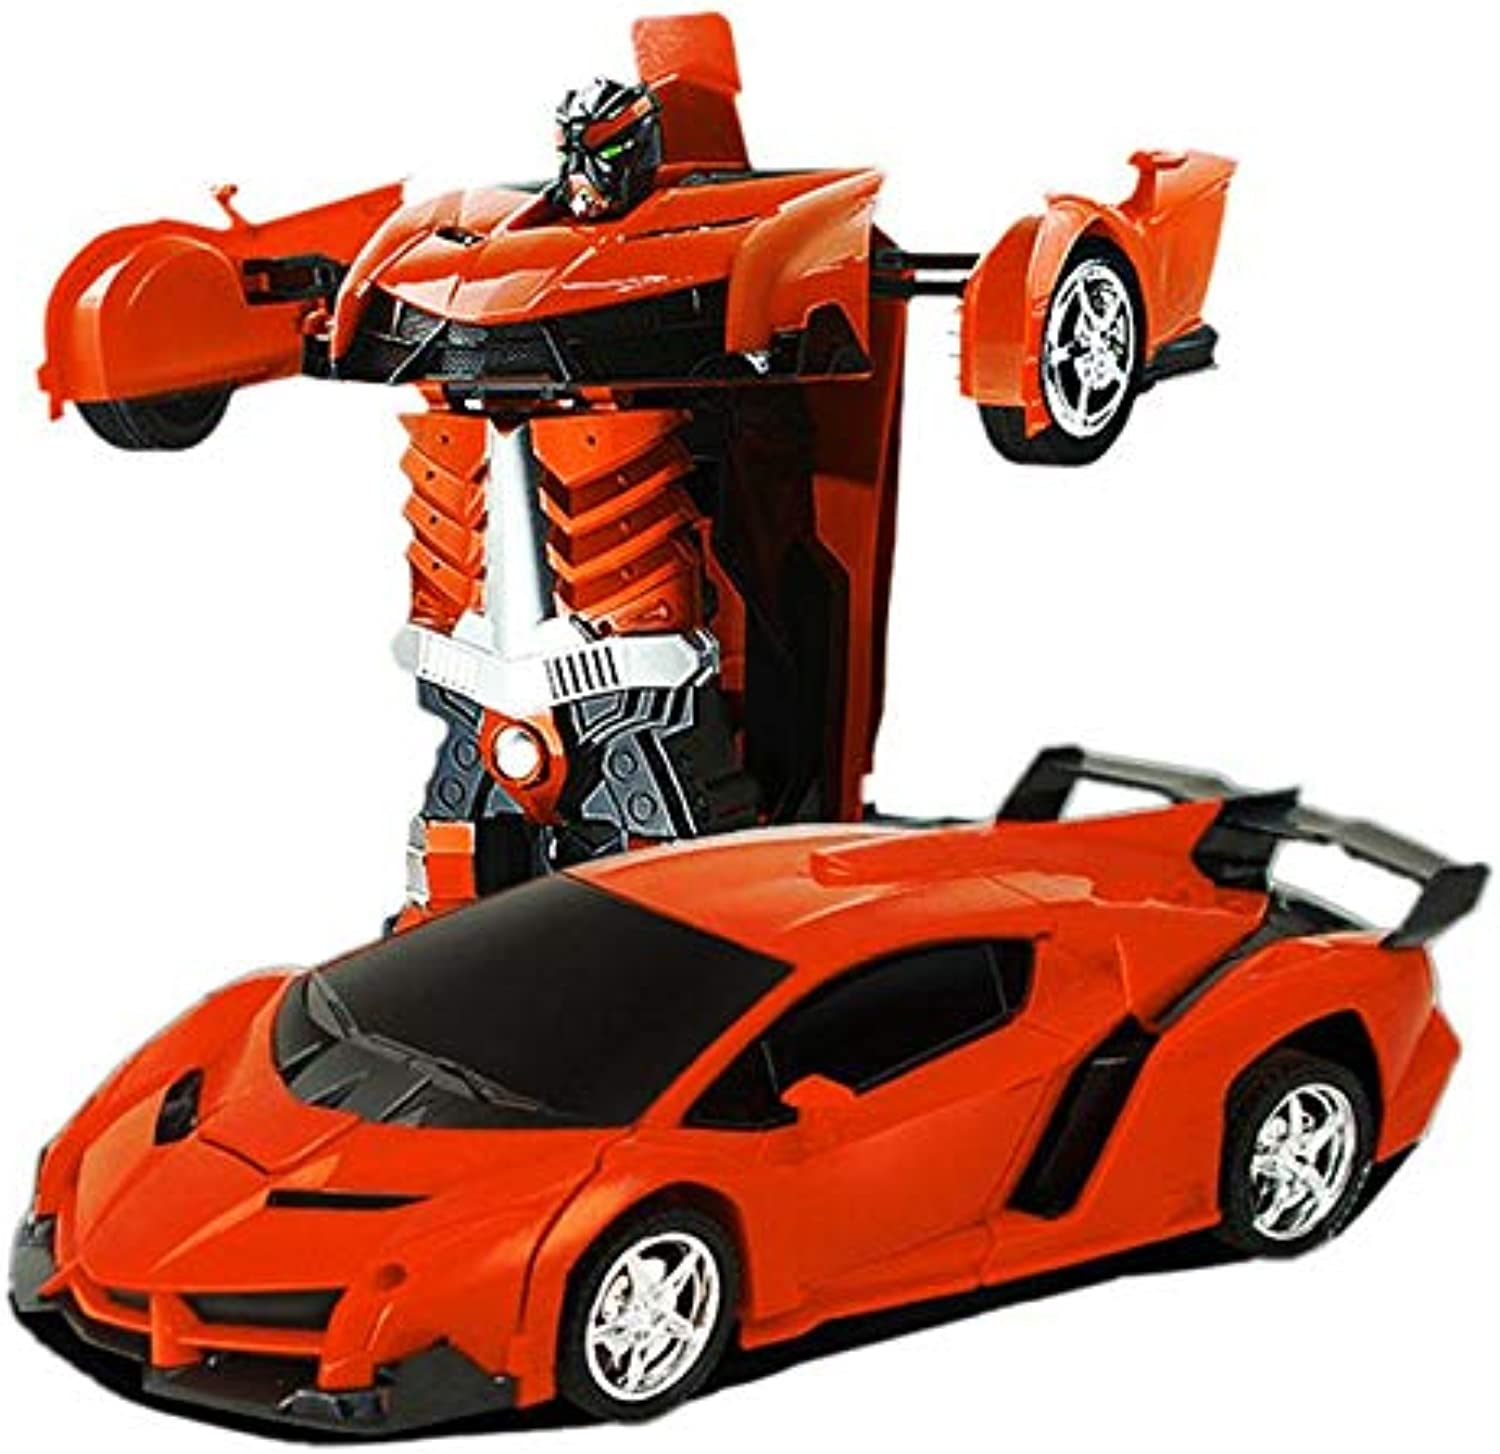 Generic New 2019 2 in 1 RC Car Sports Car Shock Resistant Transformation Robot Toy Remote Control Deformation Car RC Robots KidsToys orange